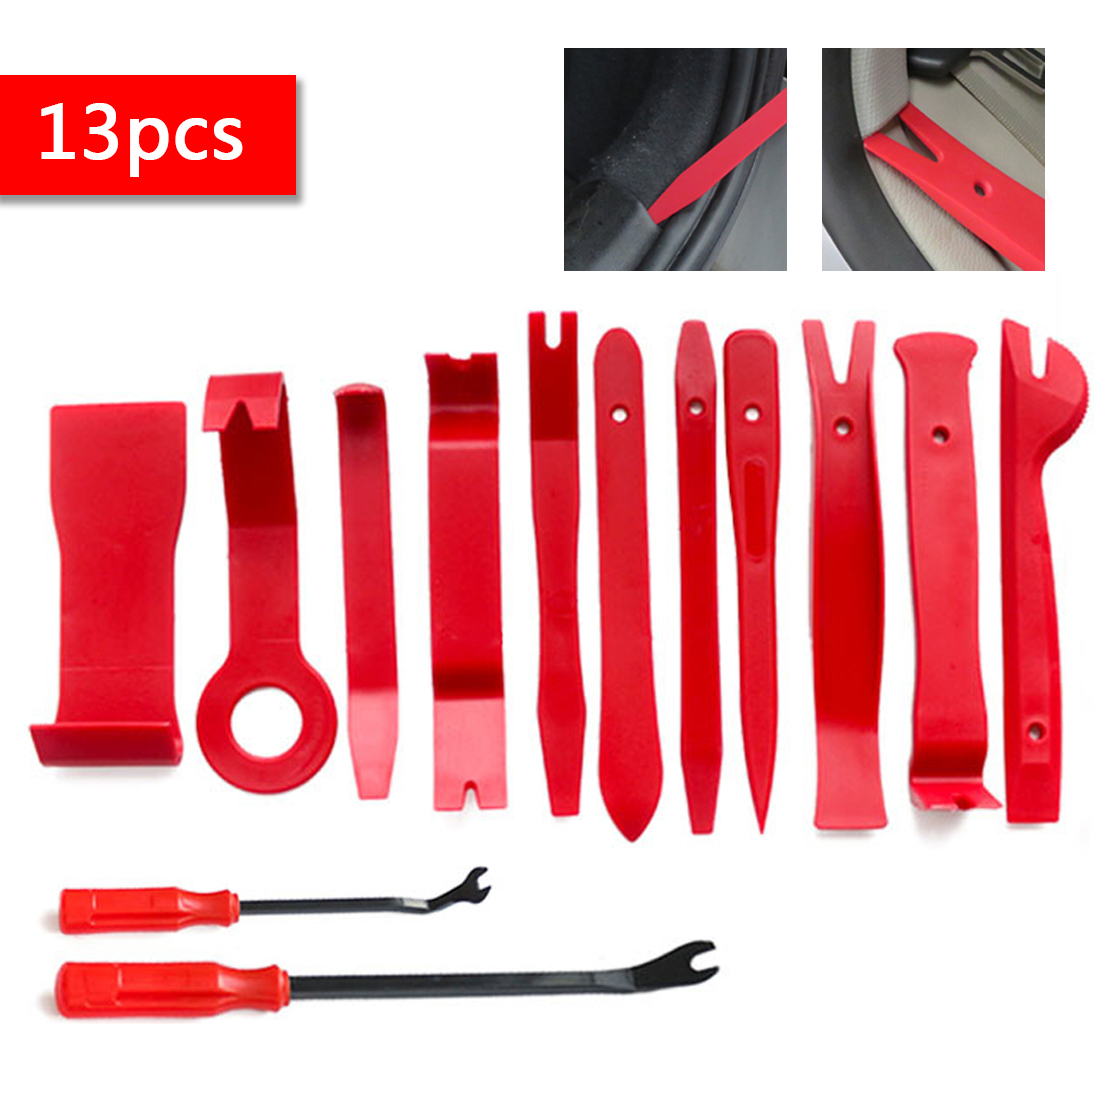 13pcs Pry Disassembly Tool Interior Door Clip Panel Trim Dashboard Removal Tool Auto Car Opening Repair Tool Hand Tool Kit